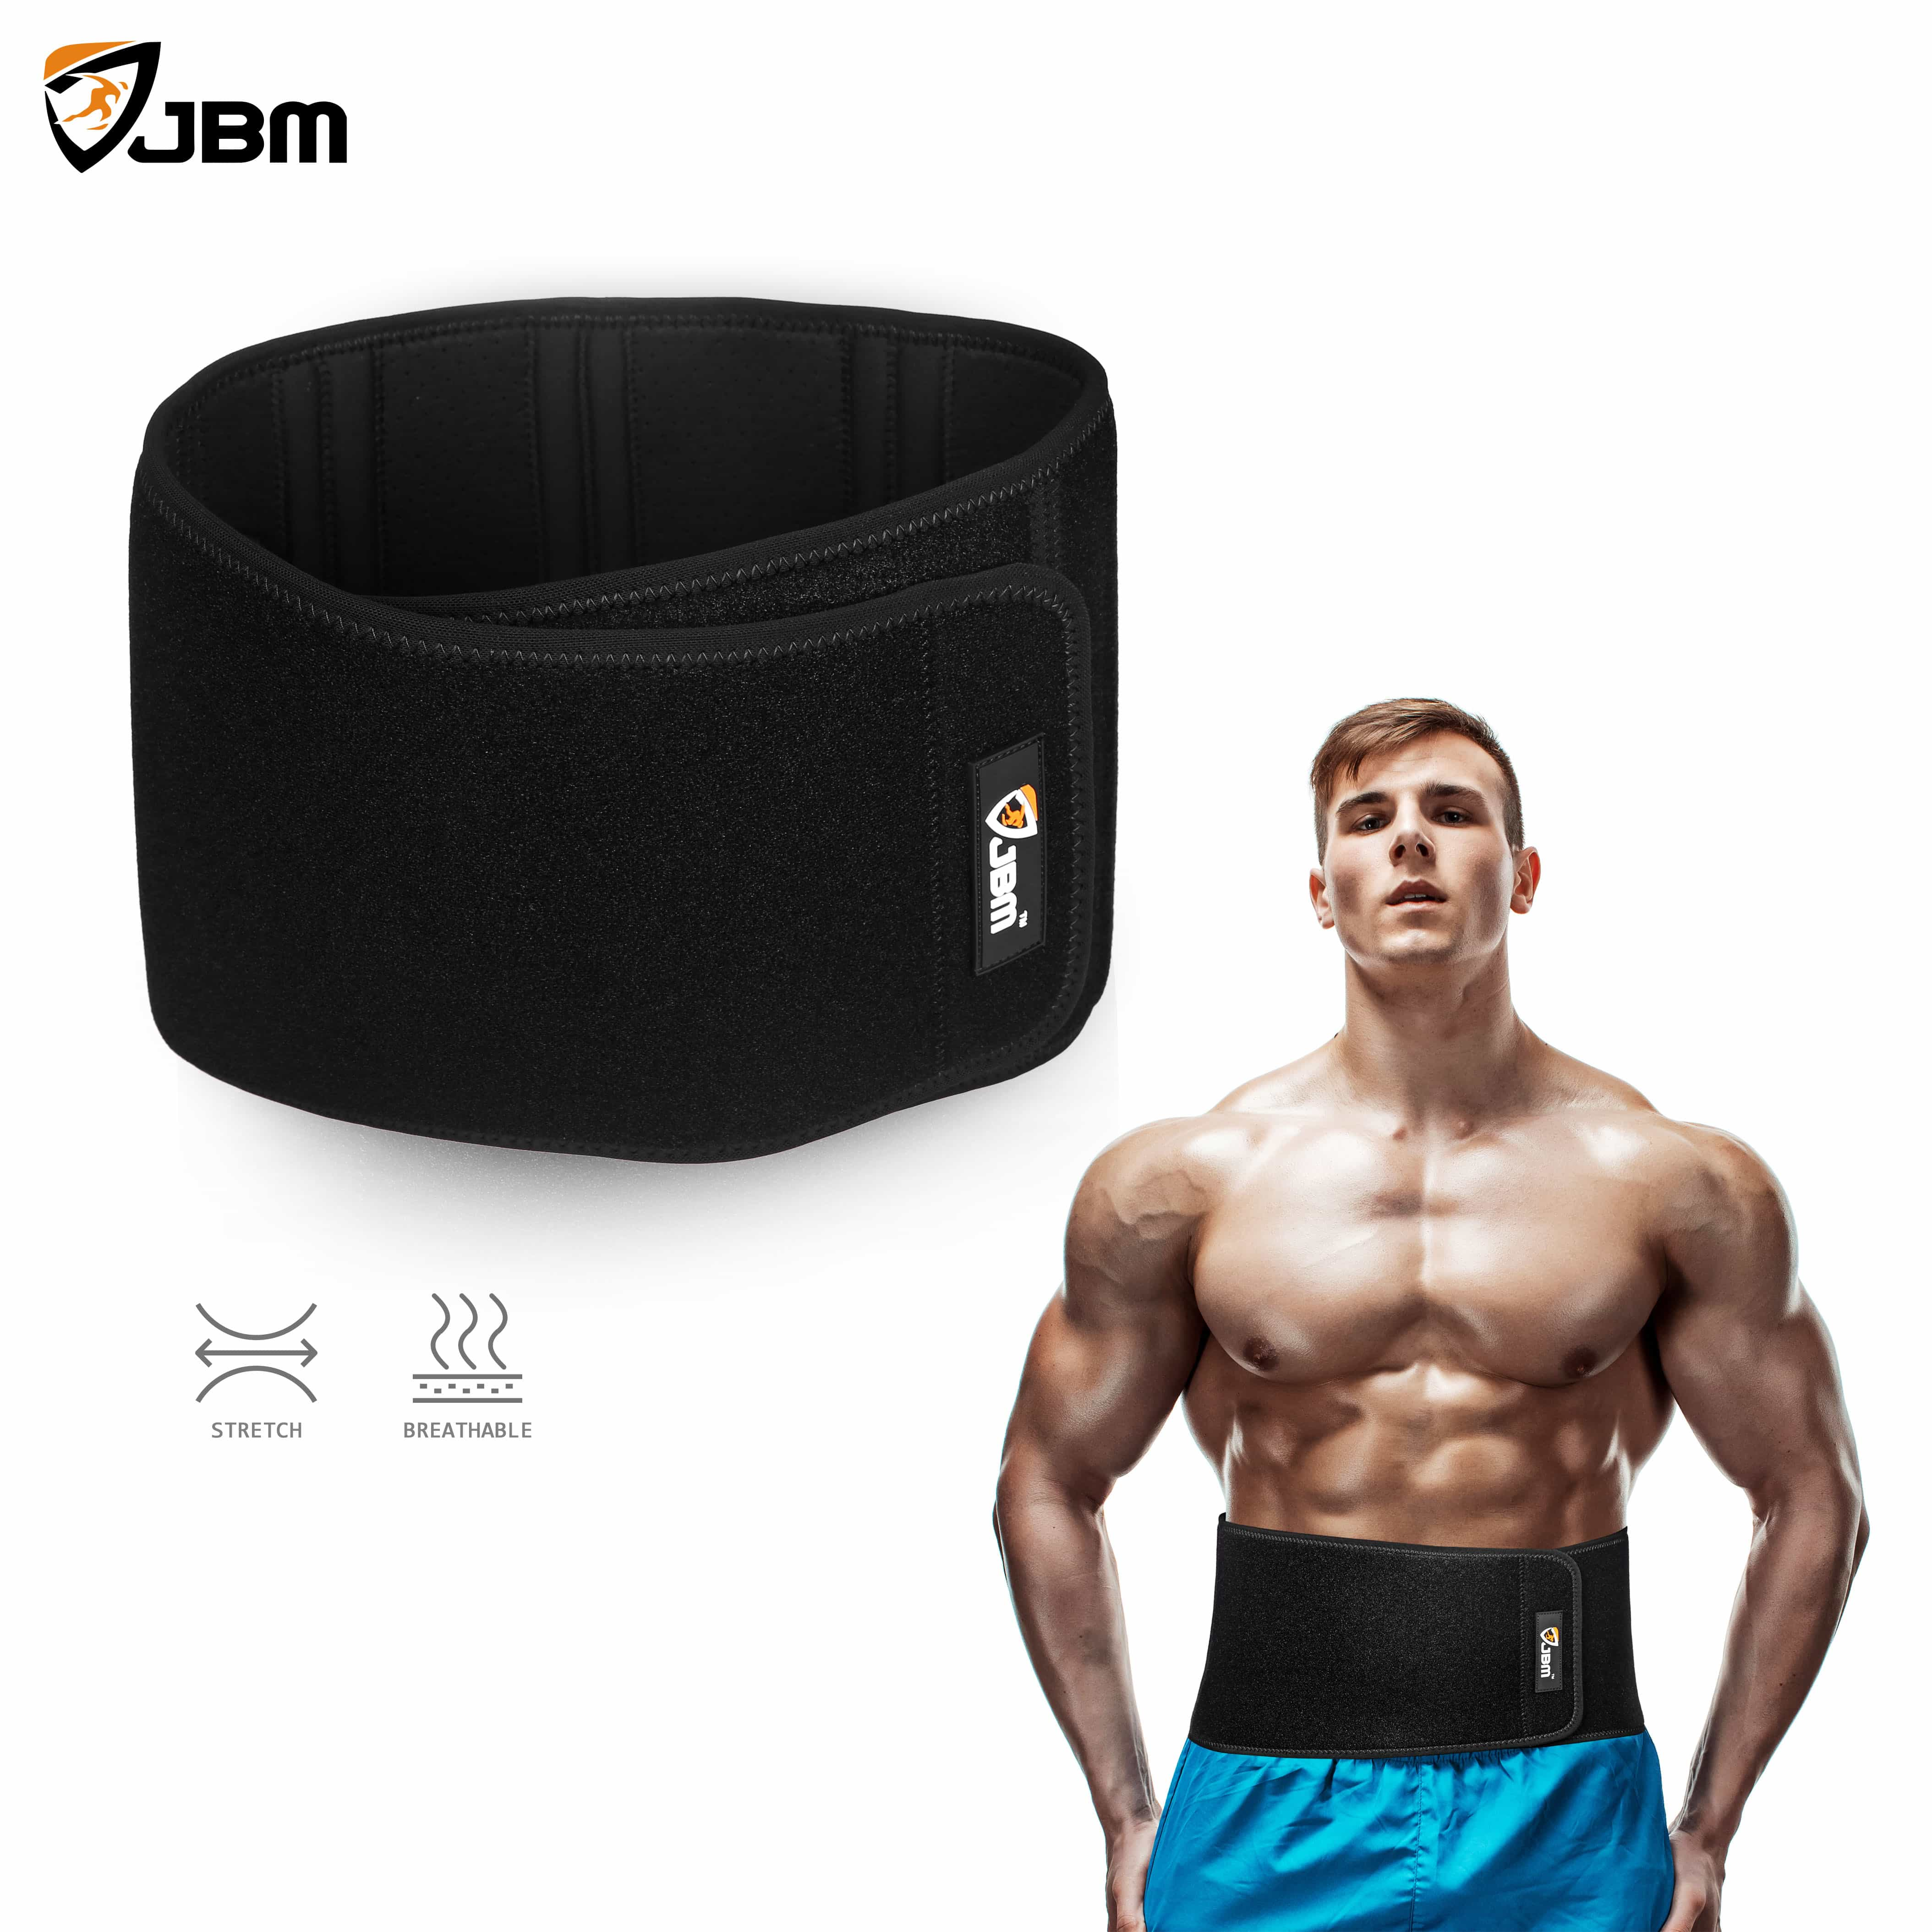 chair gym weight loss what is a sofa buy jbm adjustable waist trimmer belt wrap cincher for men & women help with ...